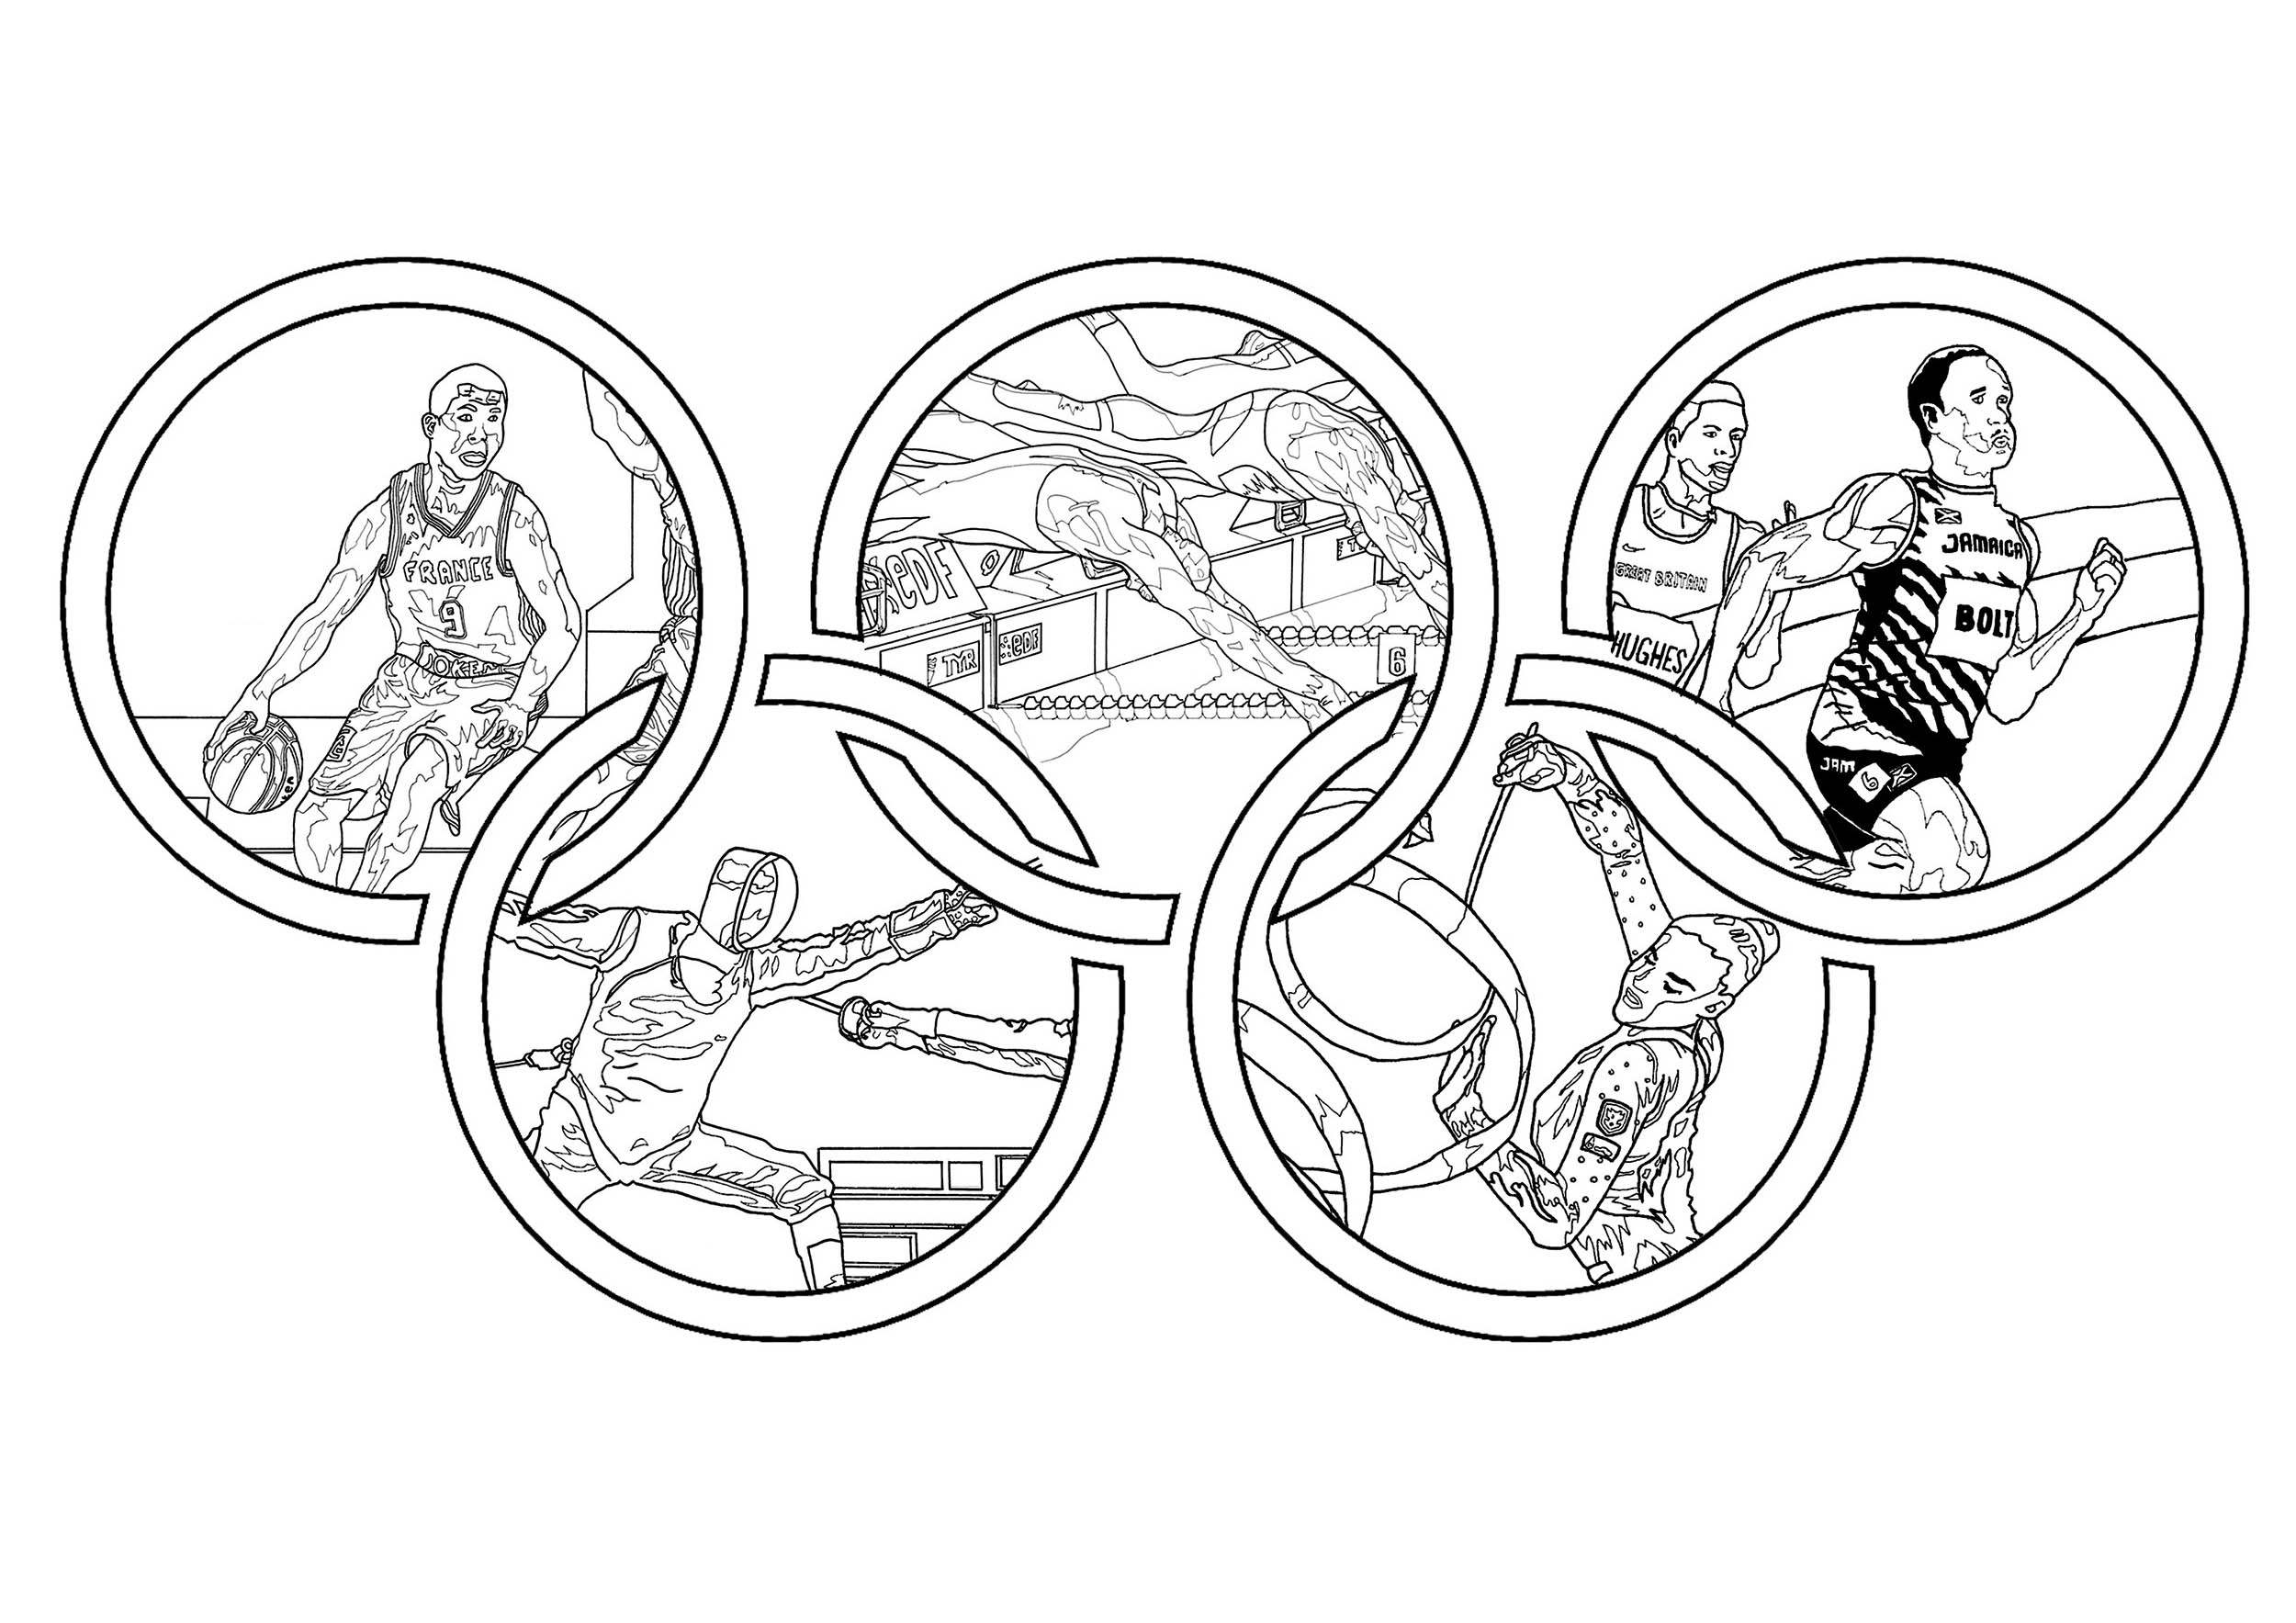 Olympic Games Olympic & Sport Adult Coloring Pages Gallery Of Olympic Games Gymnastic Paris 2024 Olympic & Sport Adult to Print